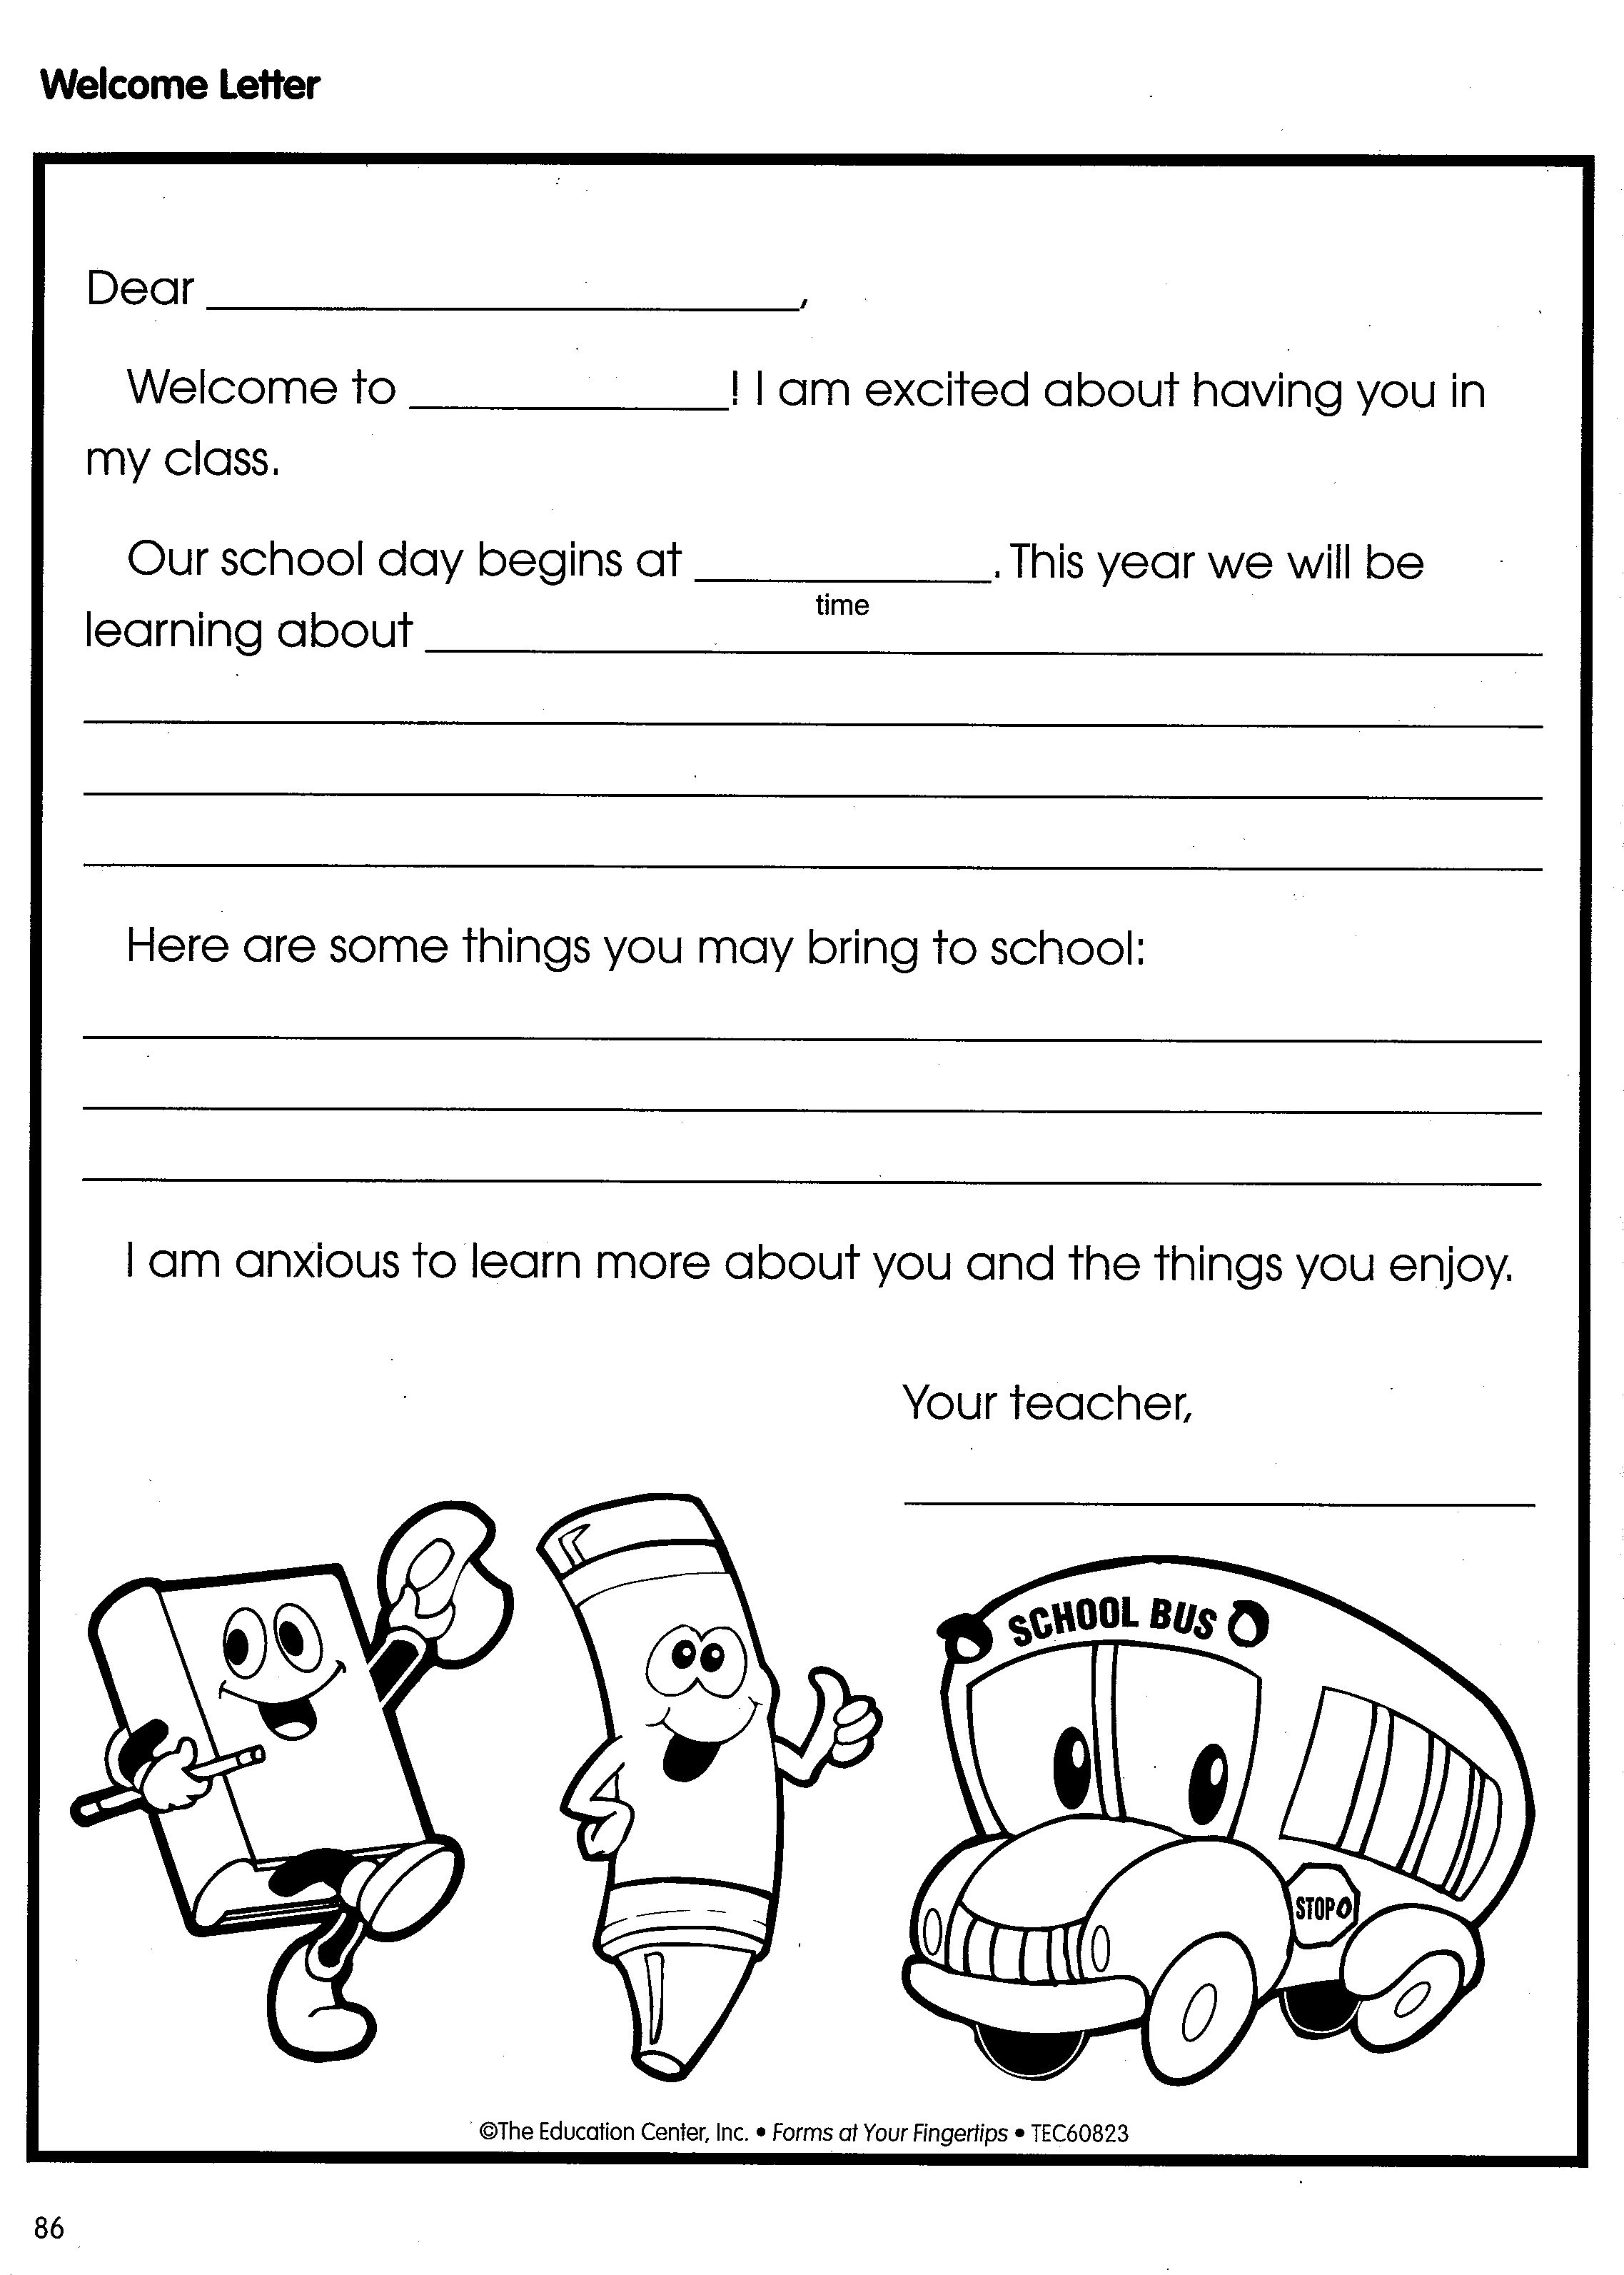 Welcome Letter  Welcome Students To Your Classroom This Year With